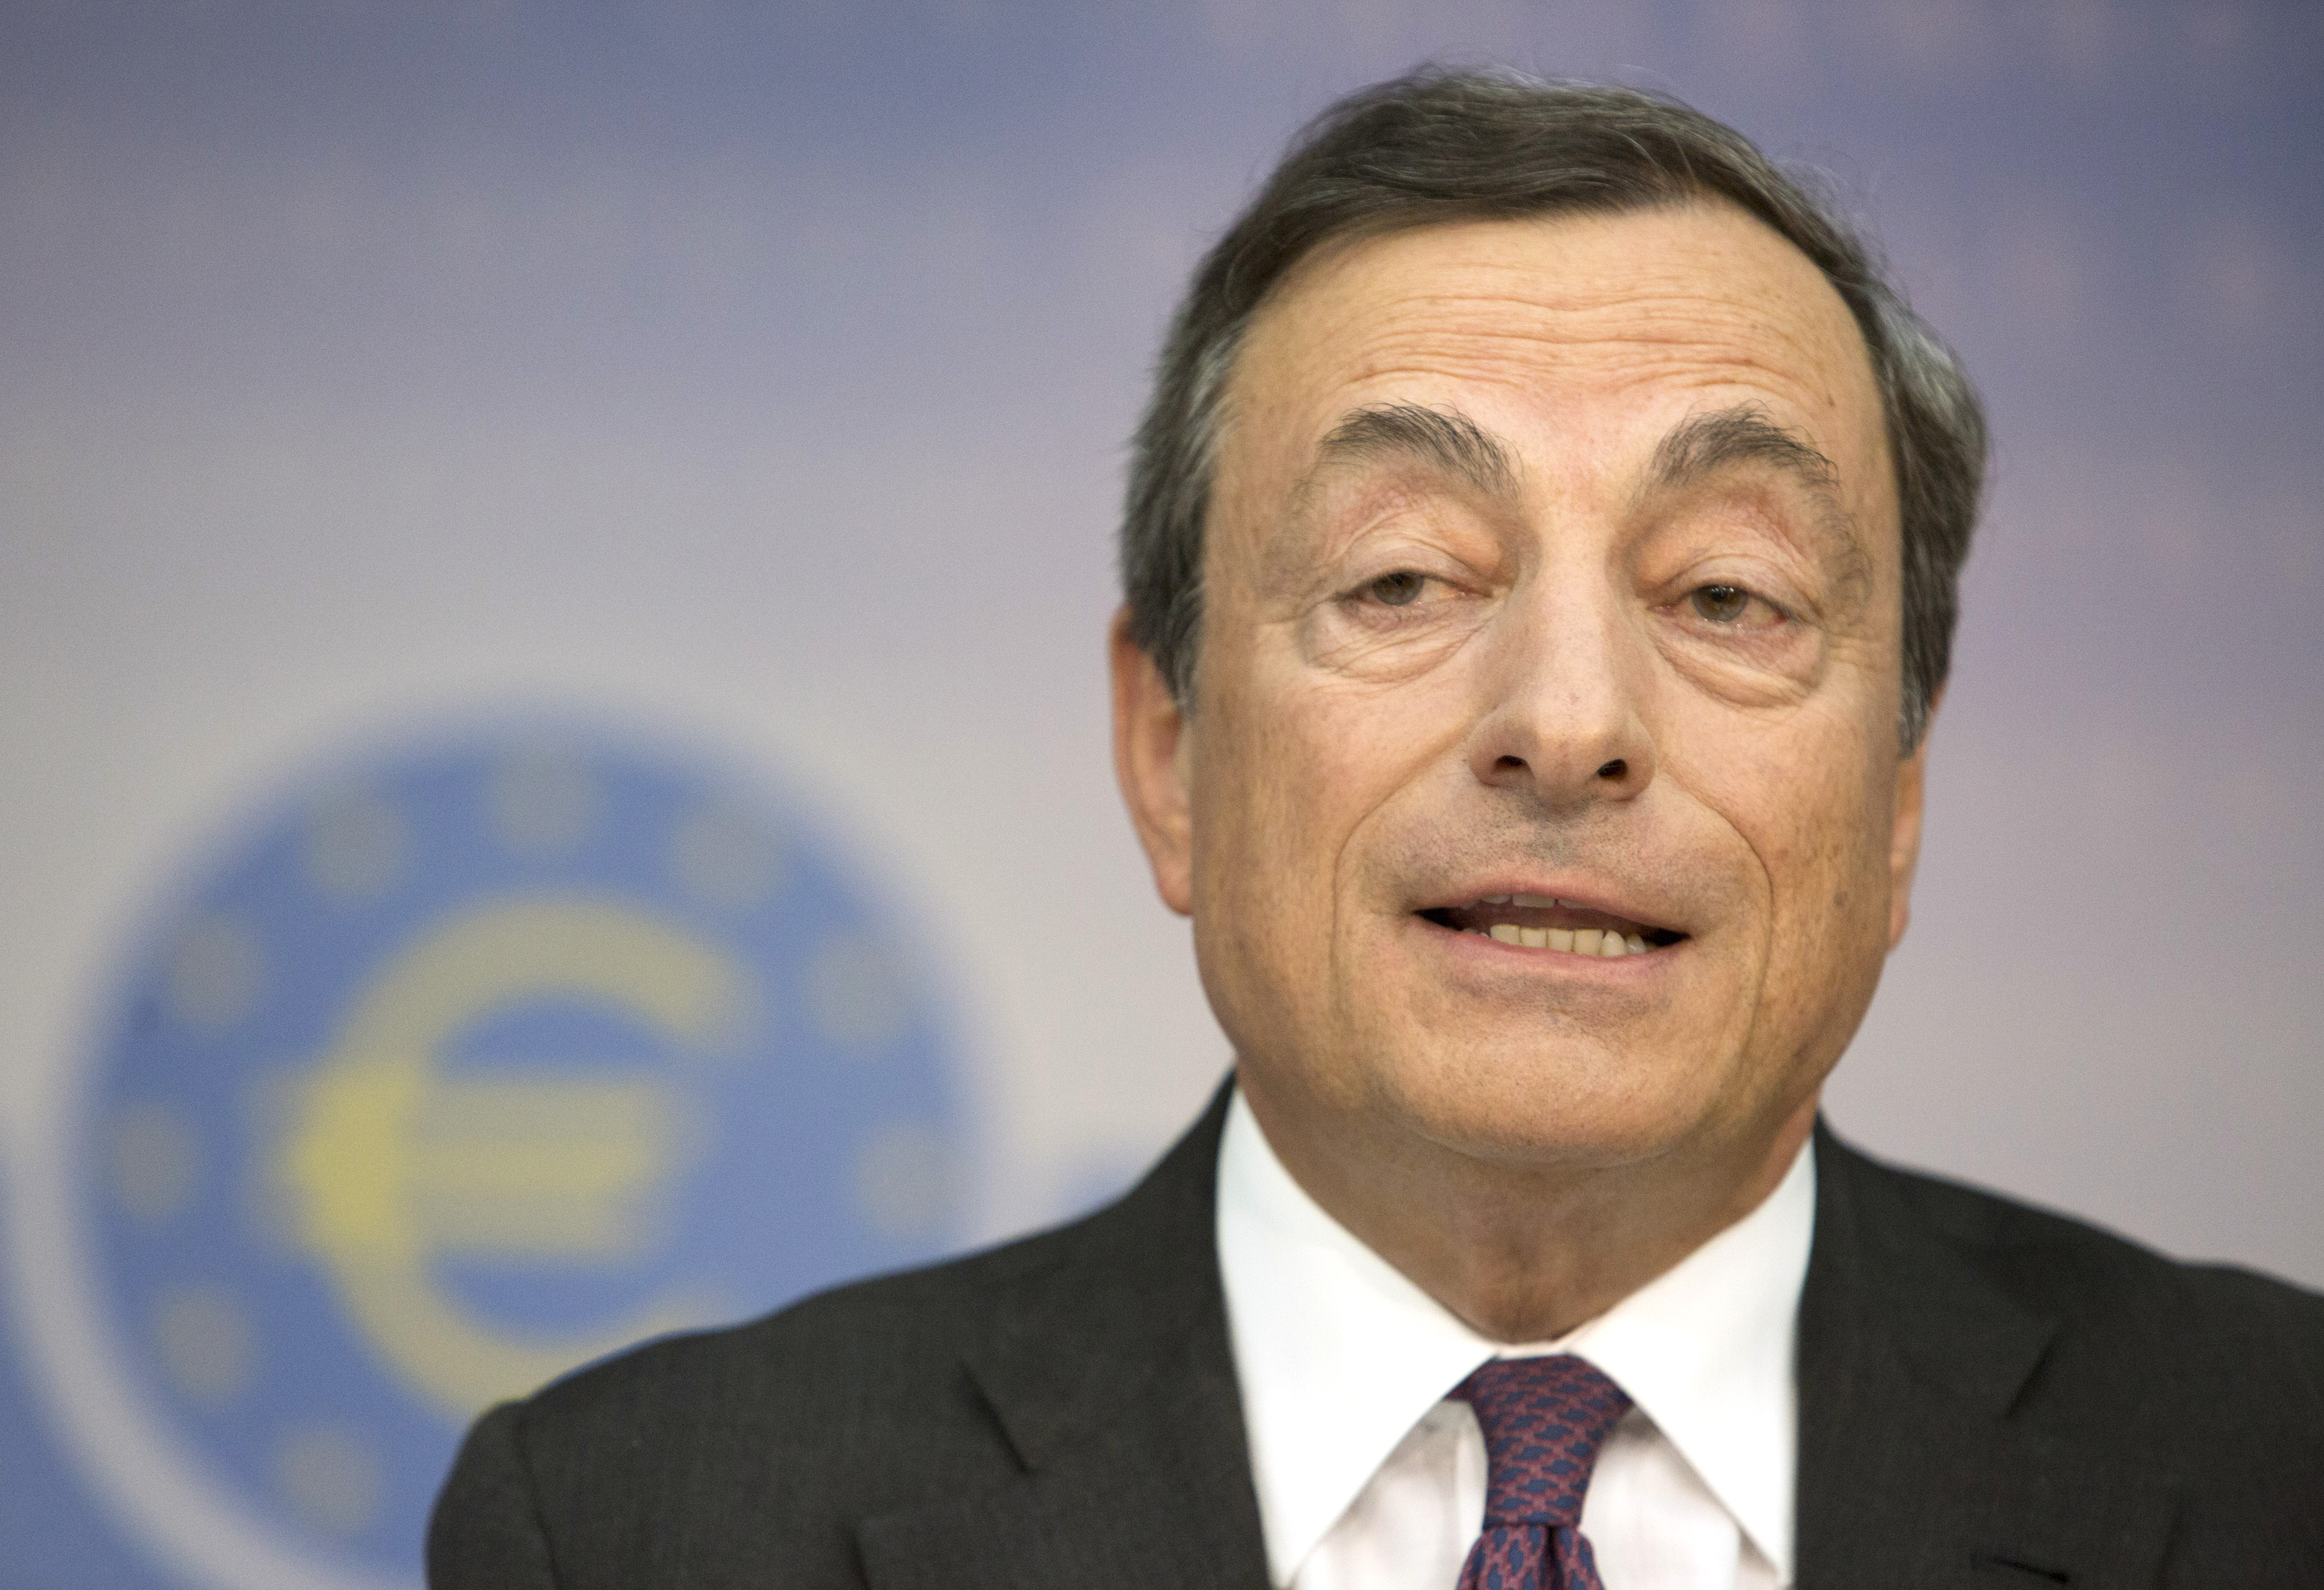 ECB President Mario Draghi Rates Conference